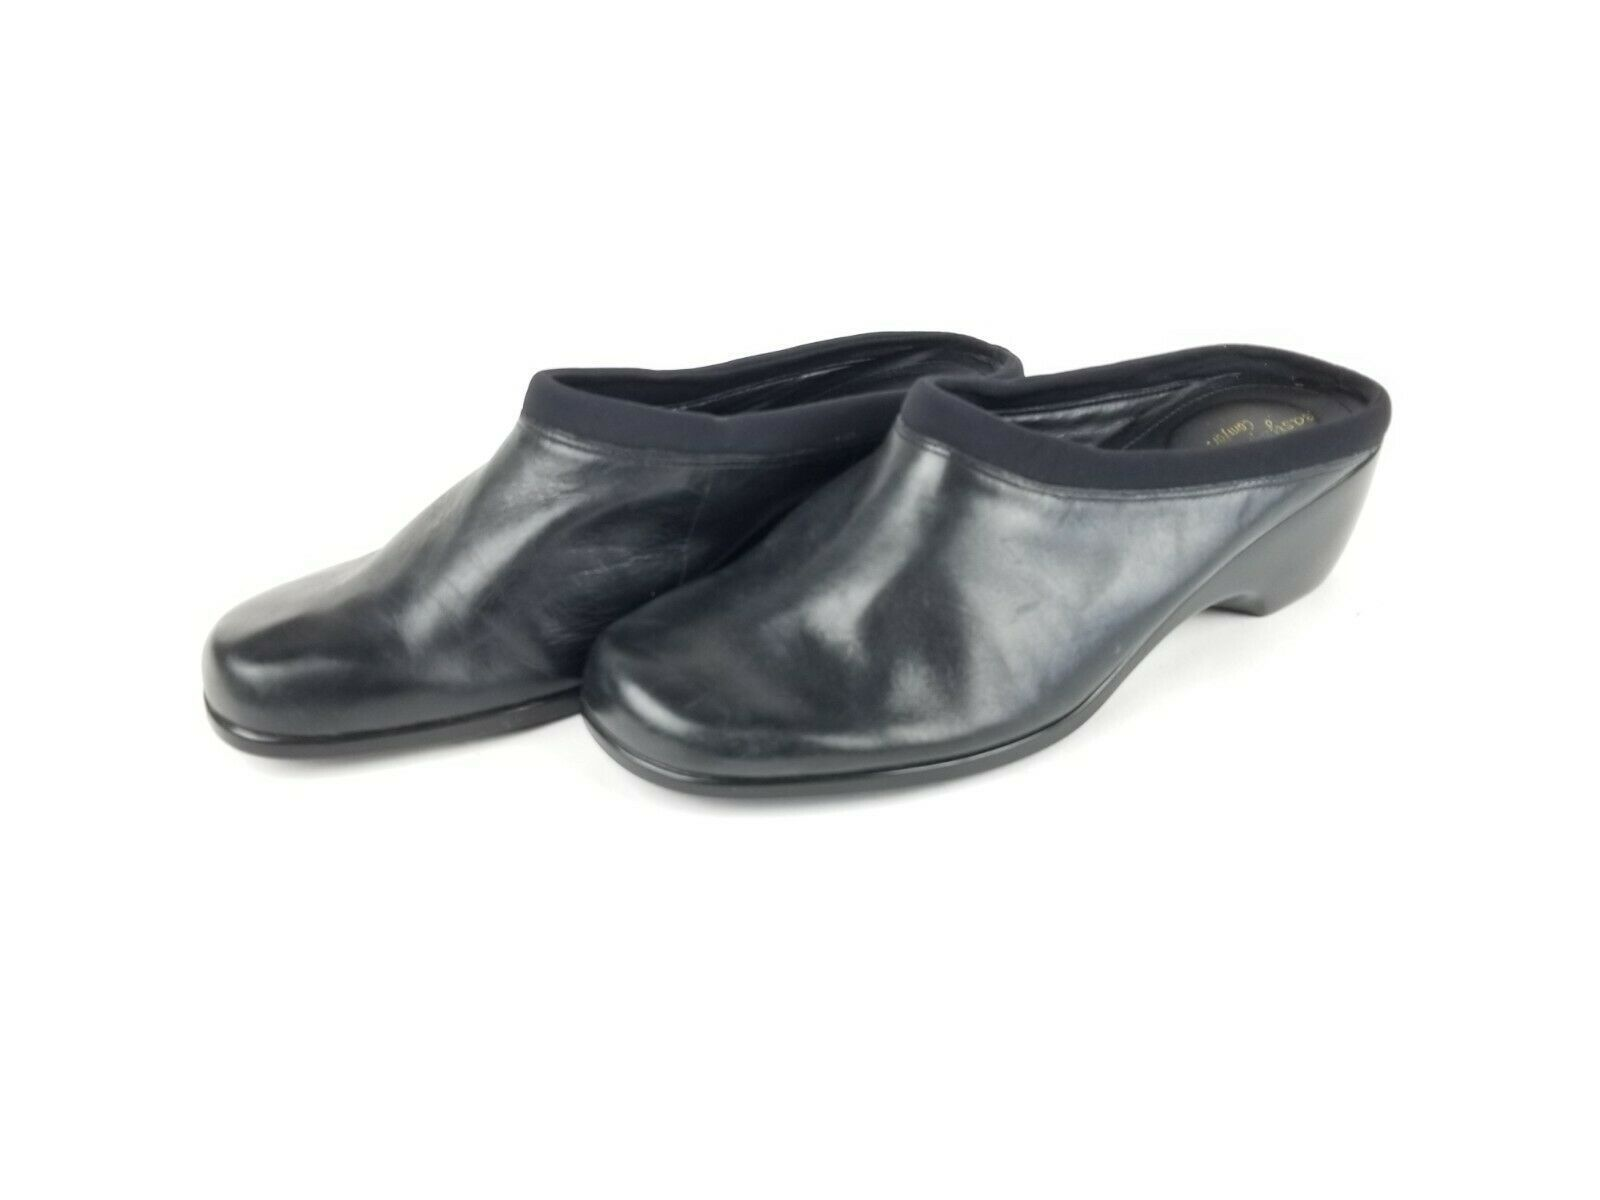 EAST SPIRIT Womens Black Leather Slip On Shoe - 0305 - Size 8.5 - Free Shipping - $48.31 CAD